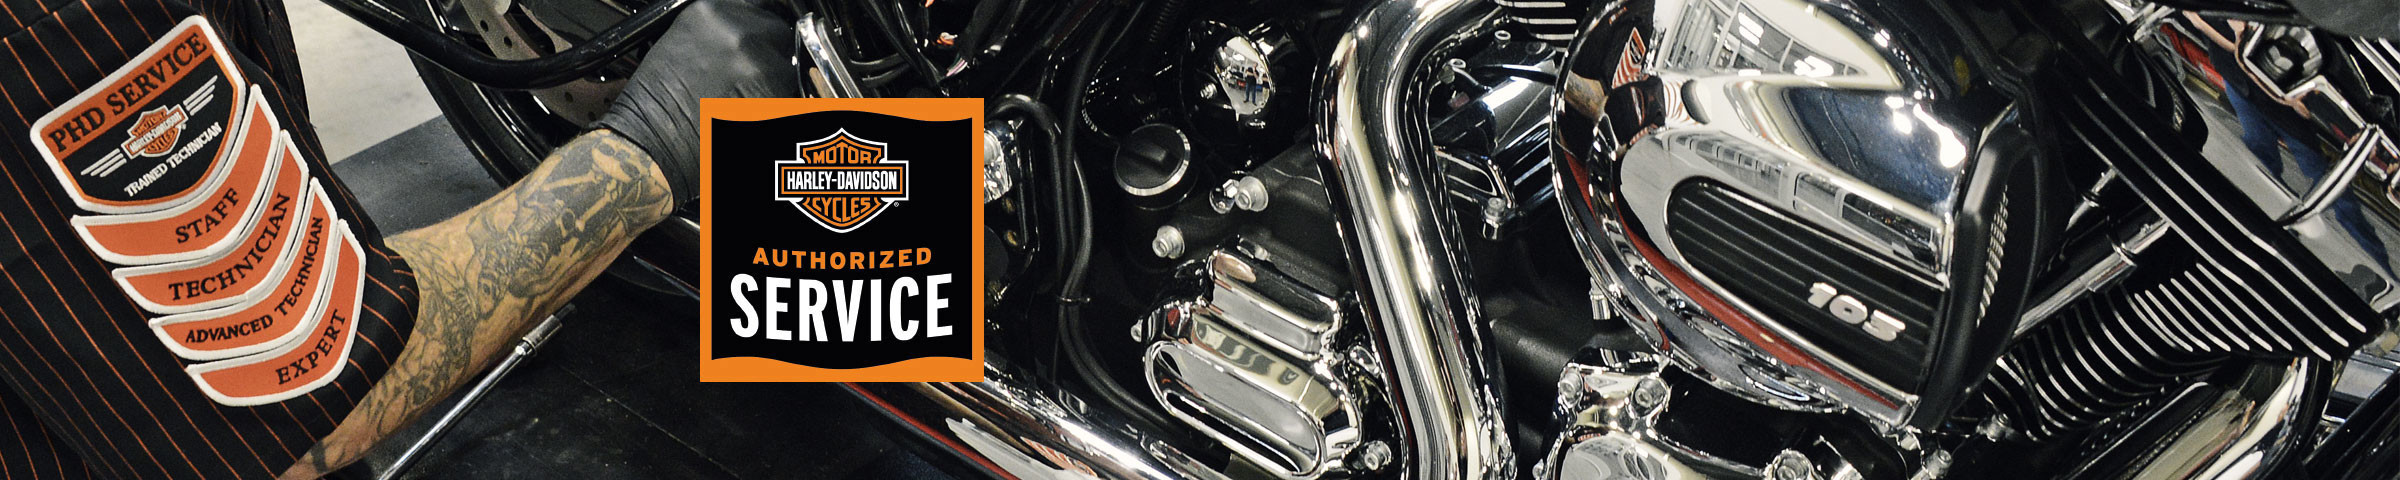 Request Harley® Service in Frederick